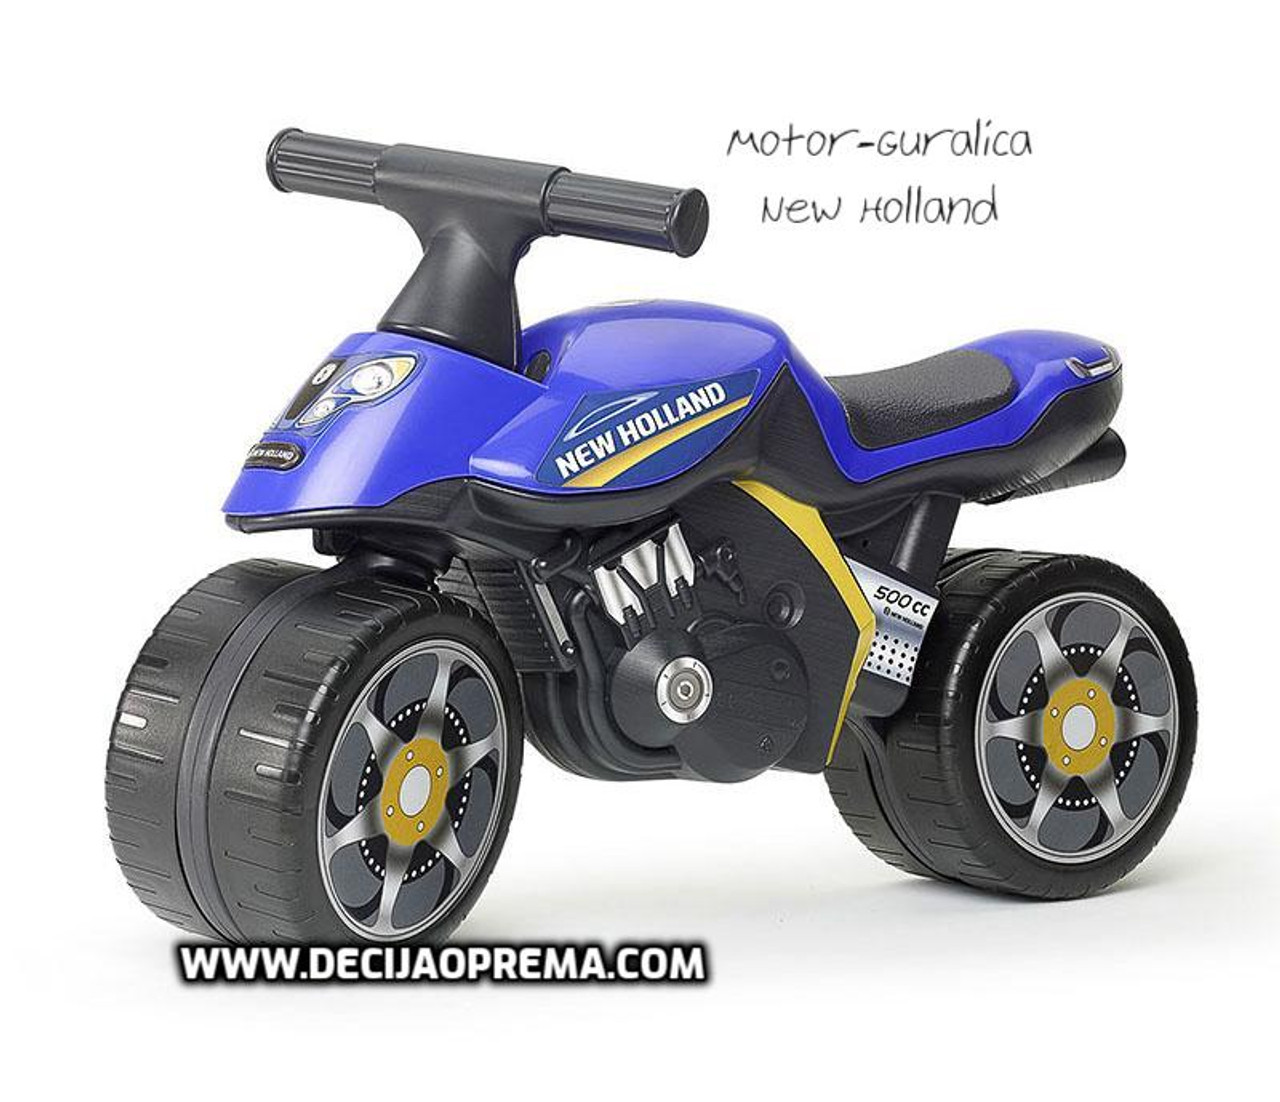 Motor Guralica New Holland